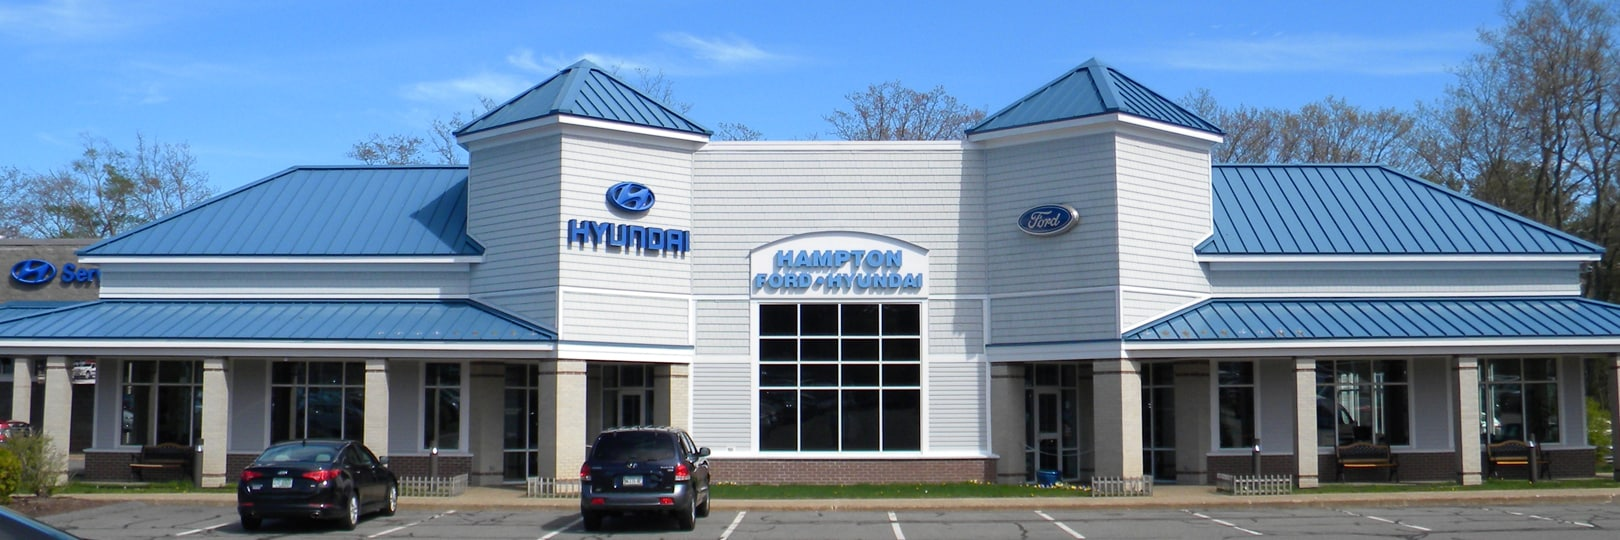 Hampton Ford Hyundai's State of the Art Dealership built in 2003